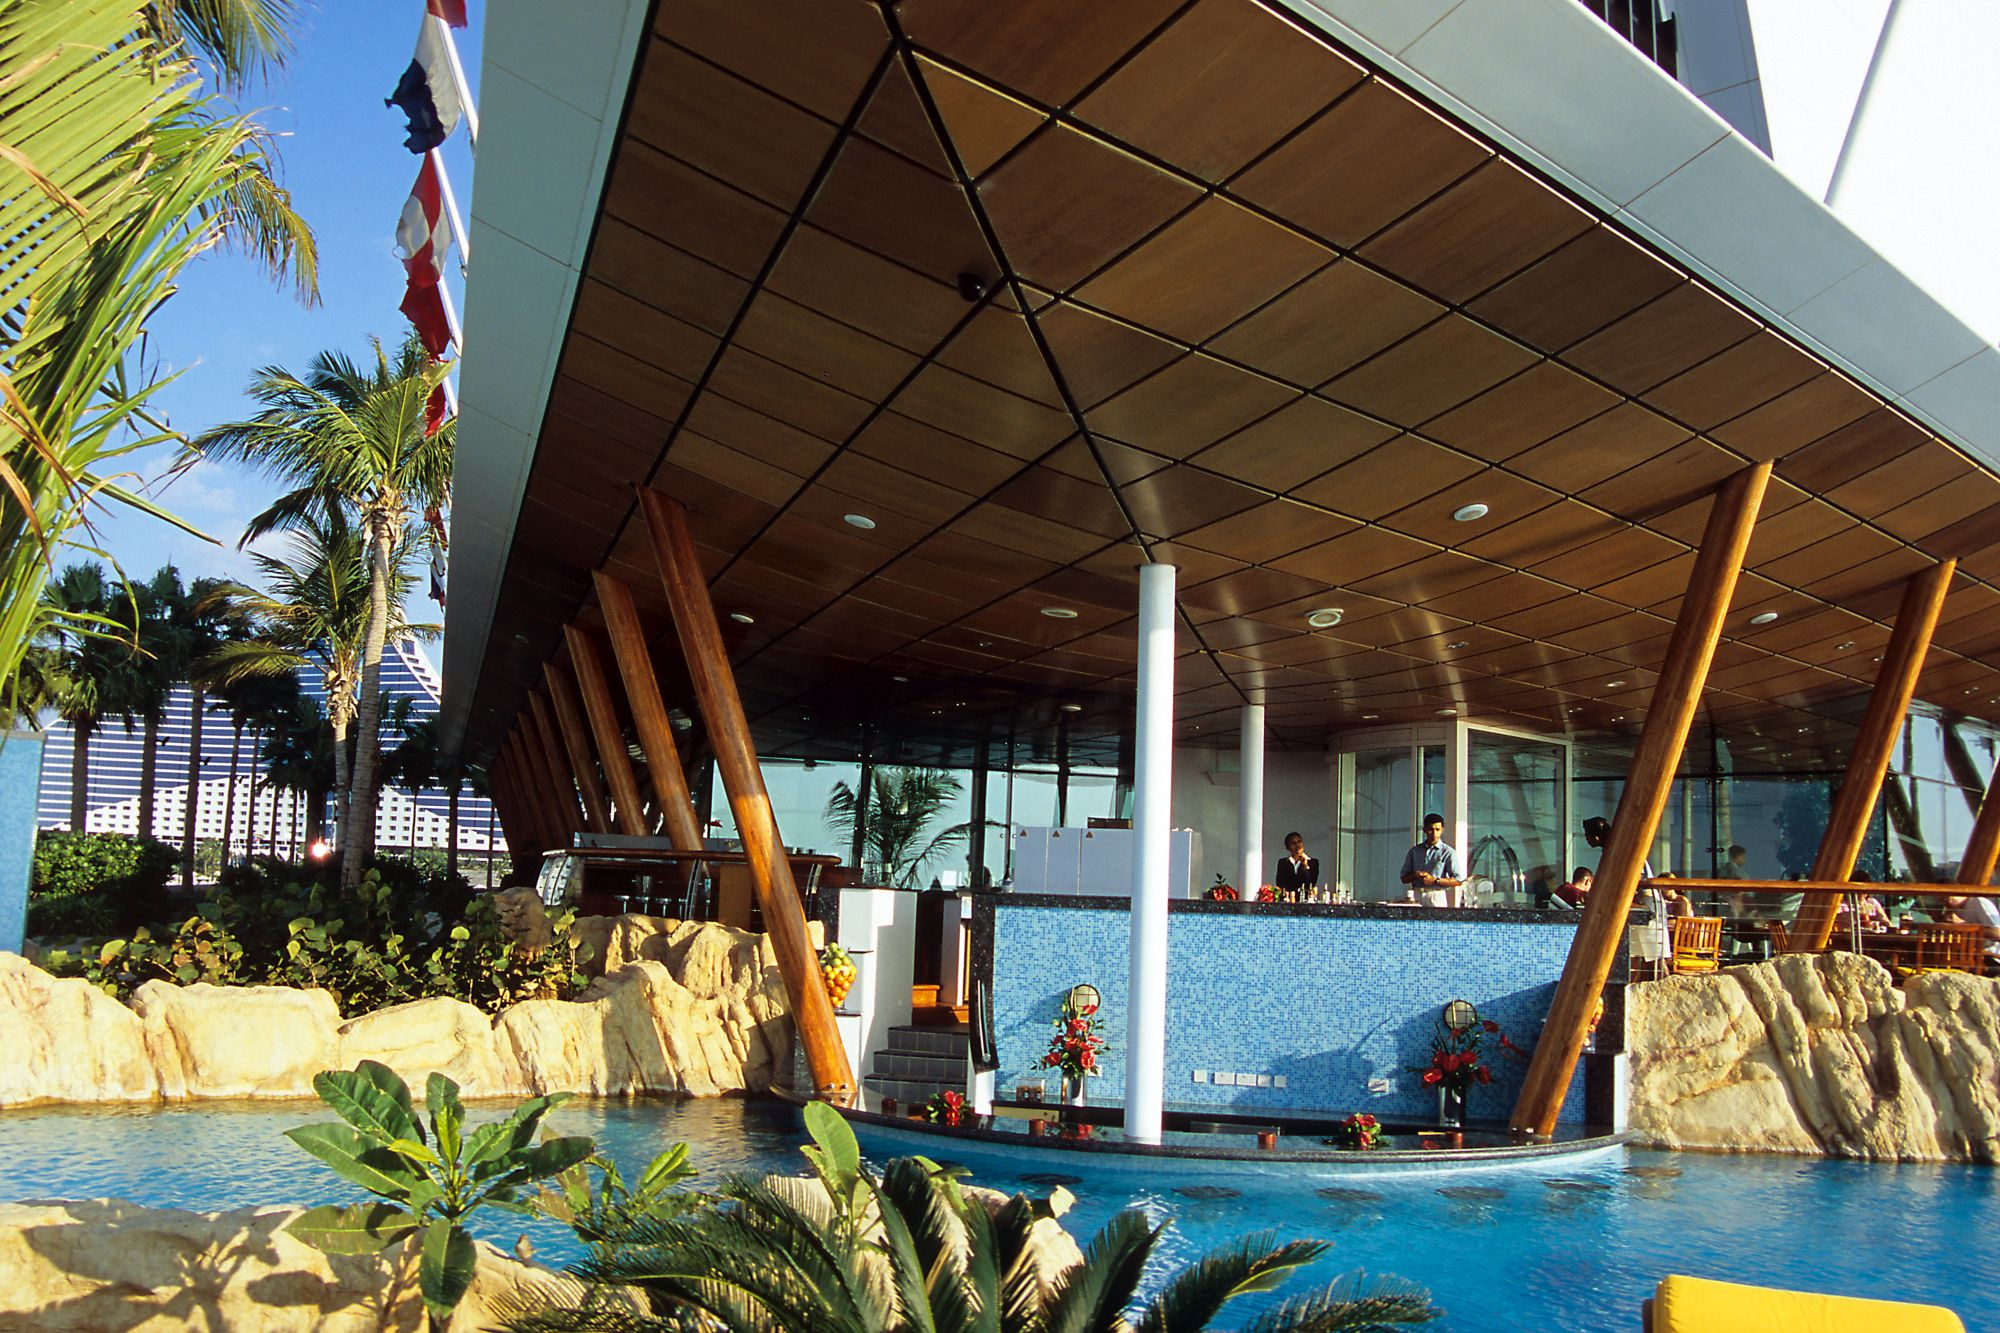 Pool Reinigen Forum Burj Al Arab Pool 1 Jumeirah Pictures Geography